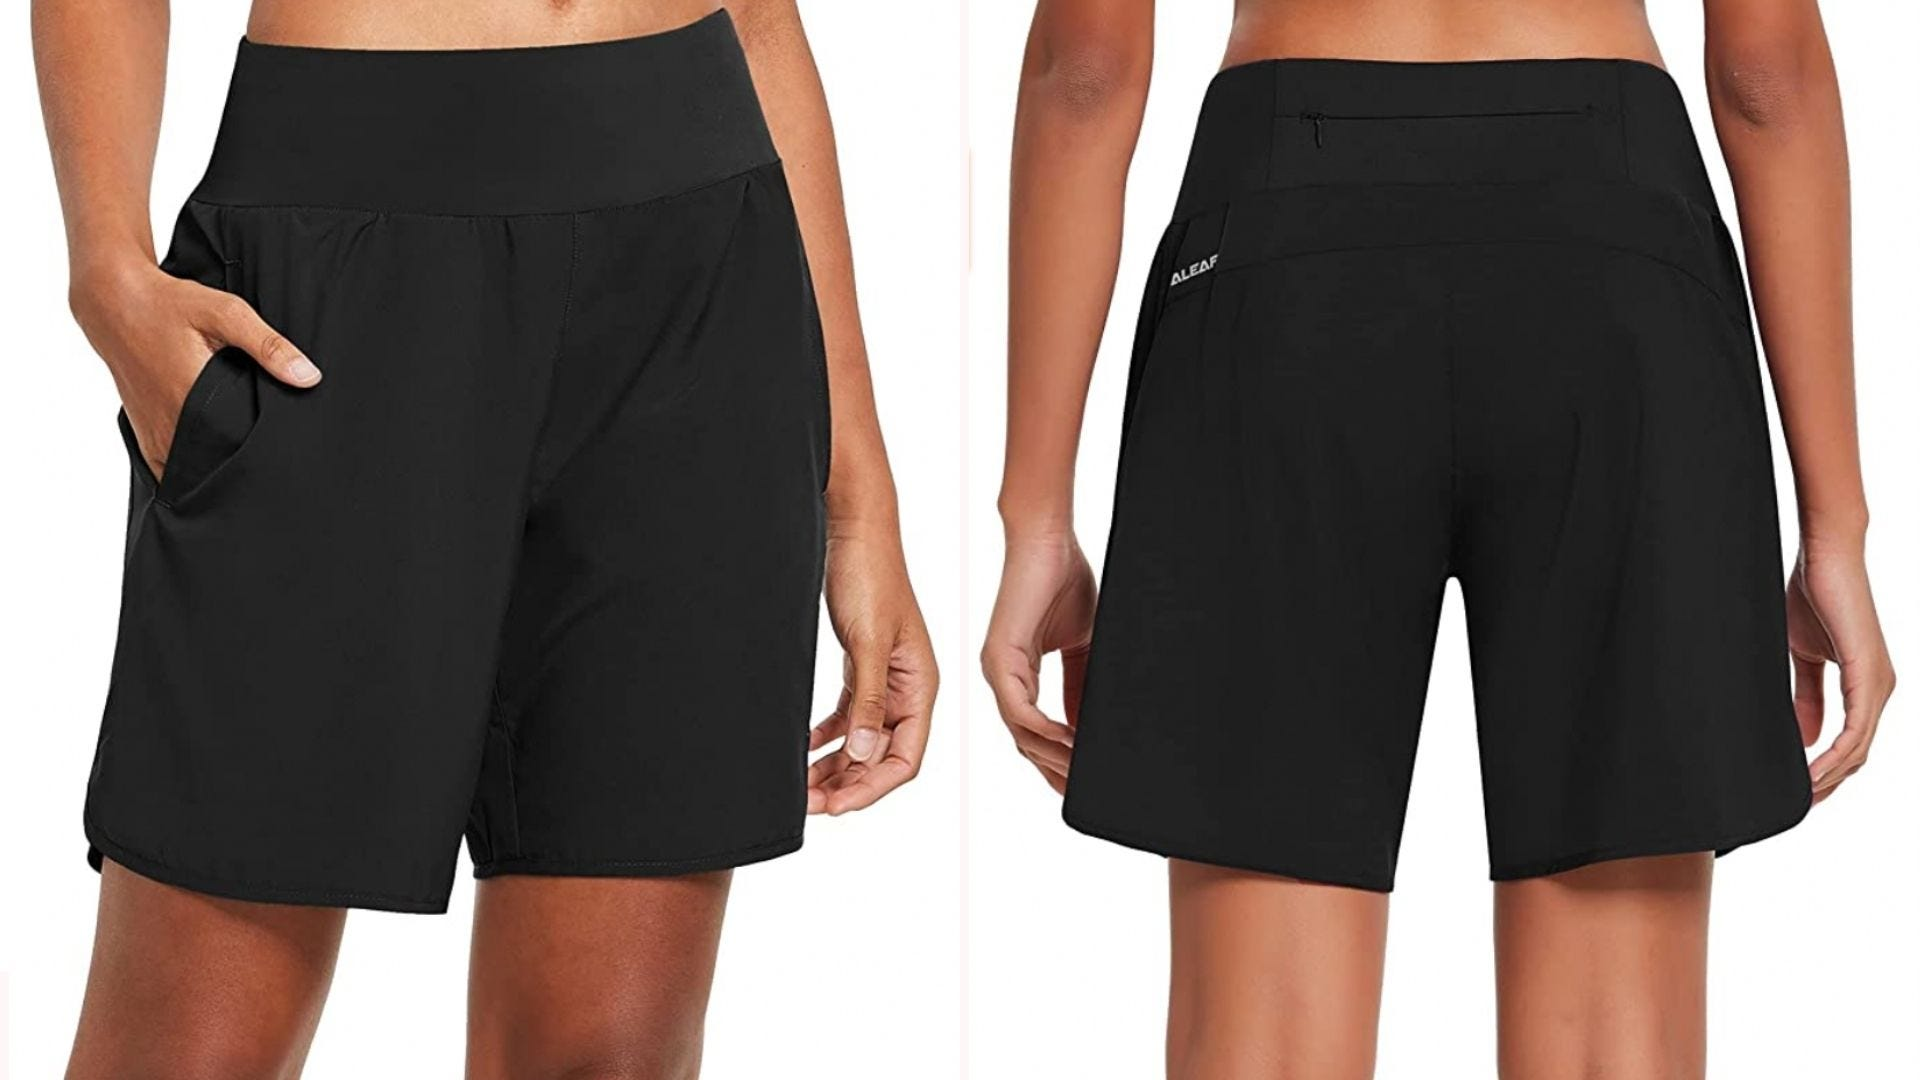 black pair of athletic shorts that come a little above the knee